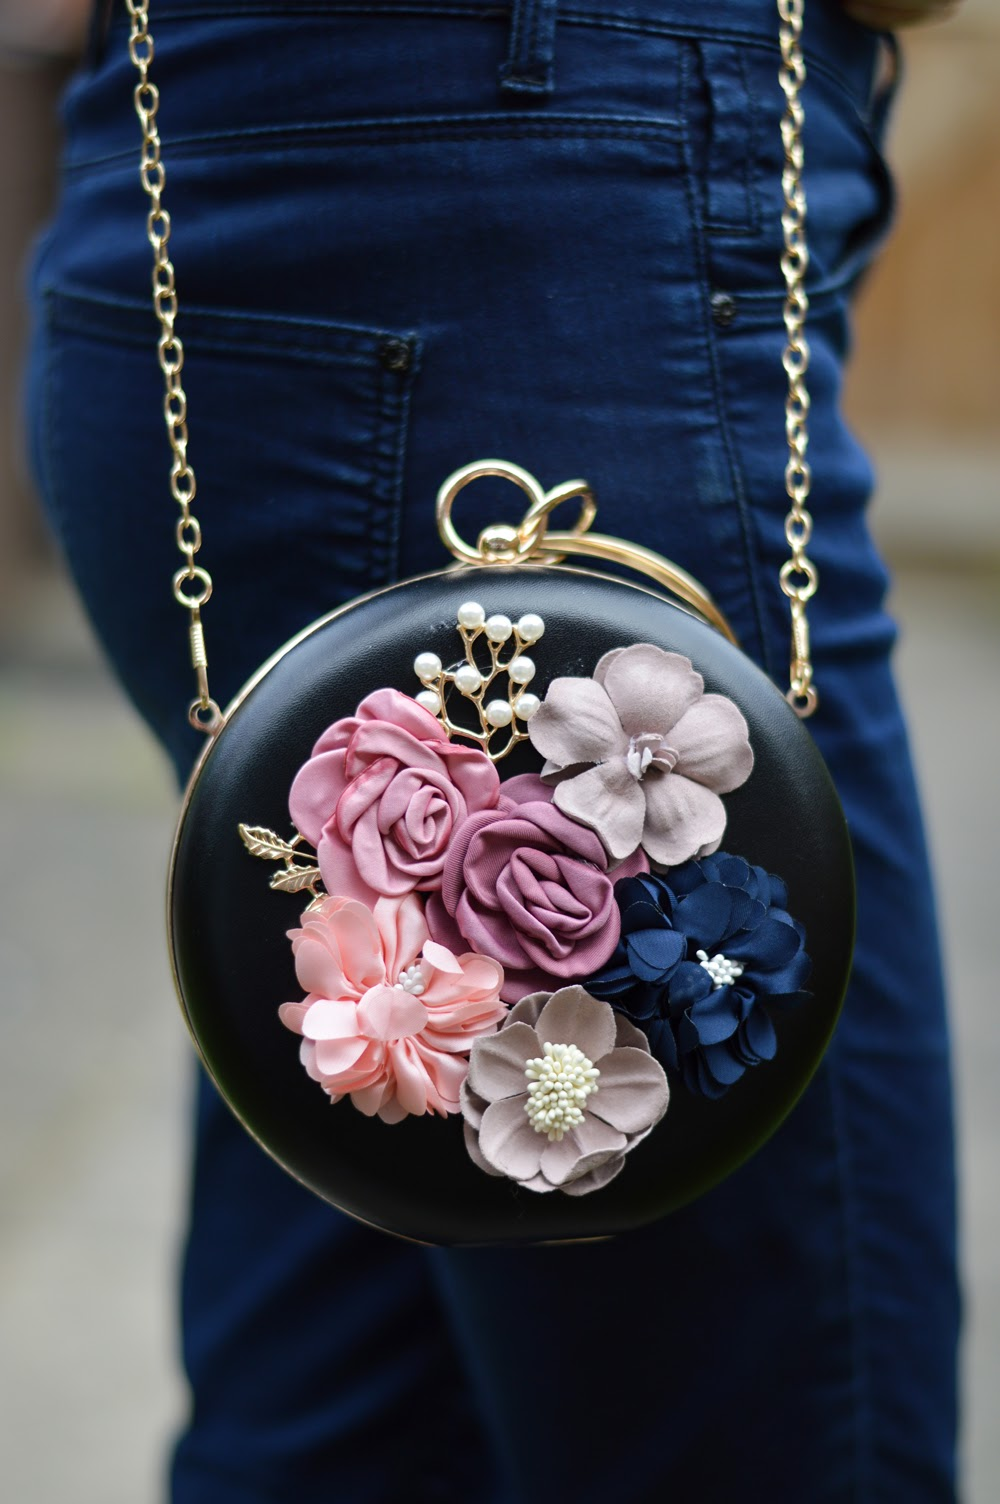 Embellished Floral Bag